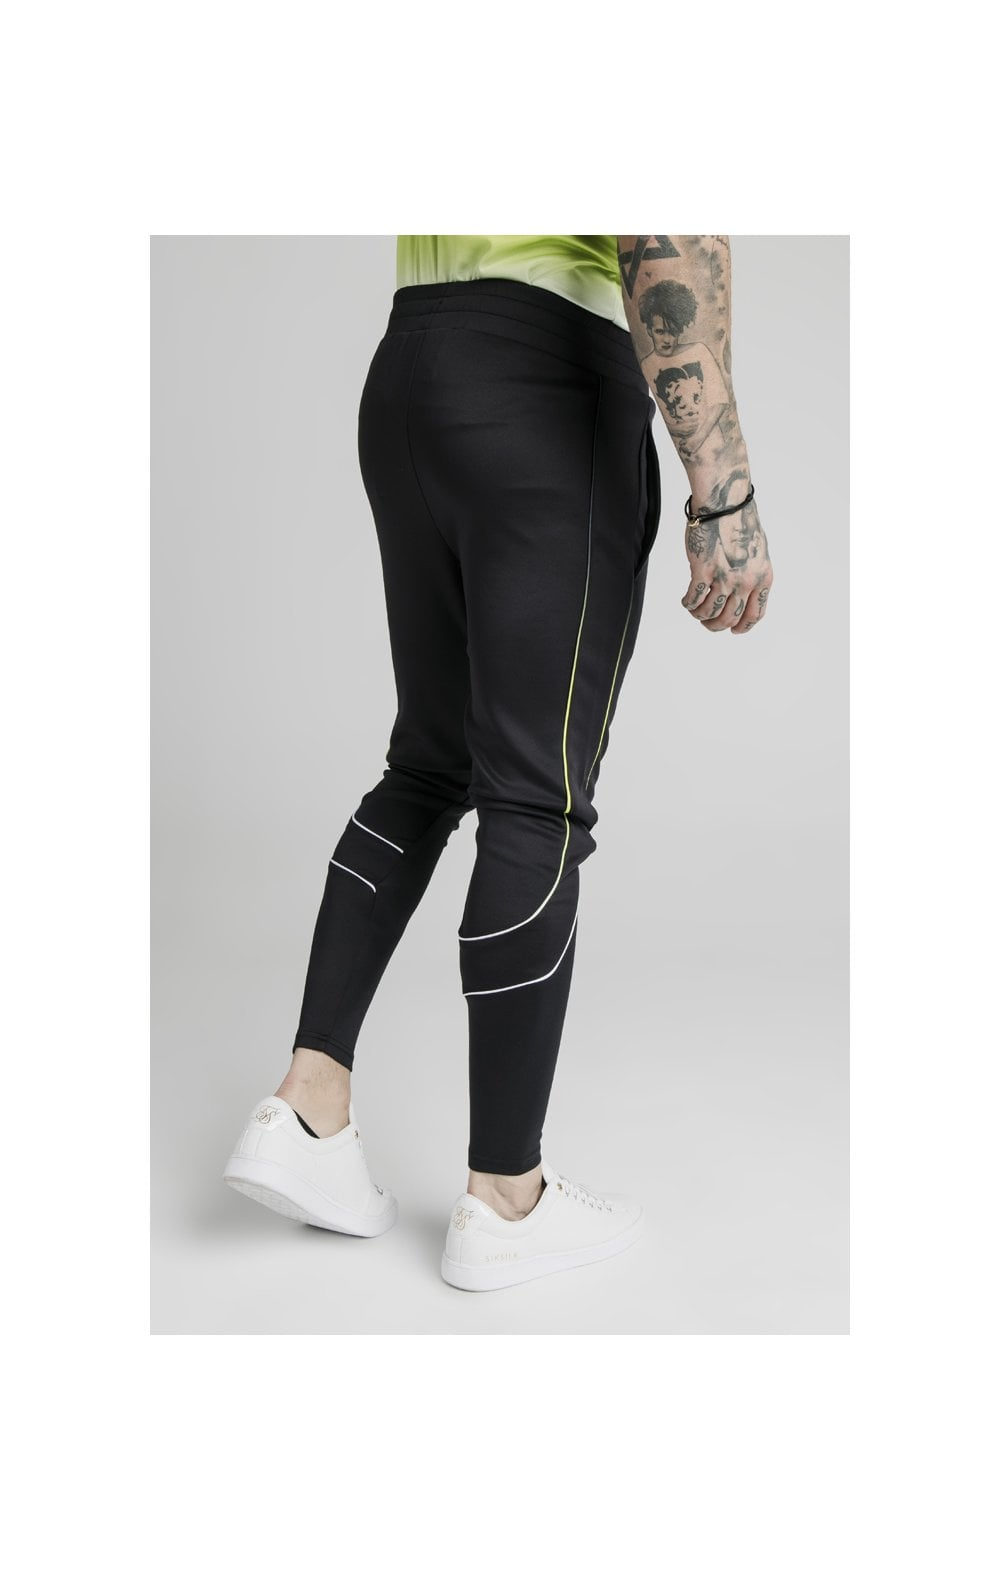 Load image into Gallery viewer, SikSilk Tri Fade Tape Track Pants - Black, Fluro & White (3)